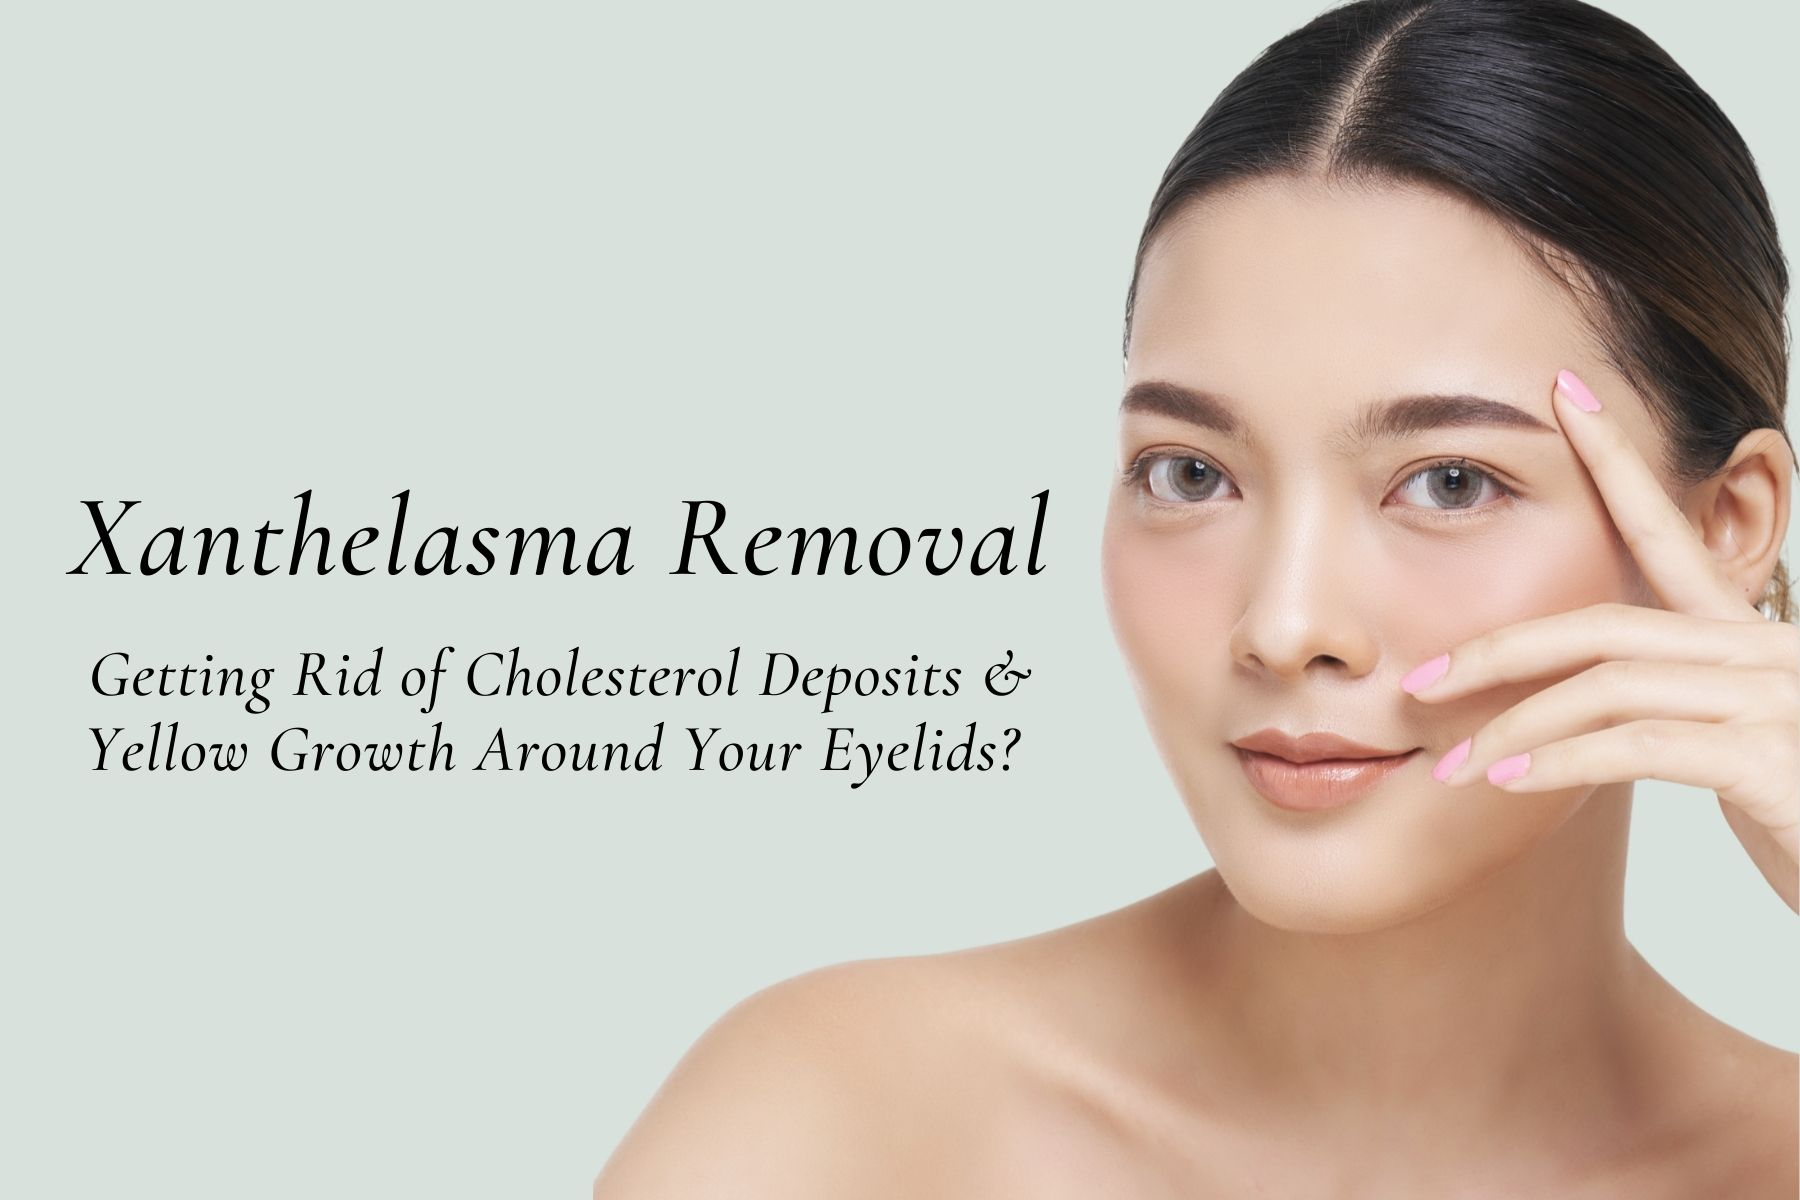 Xanthelasma Removal In Singapore – Getting Rid of Cholesterol Deposits & Yellow Growth Around Your Eyelids